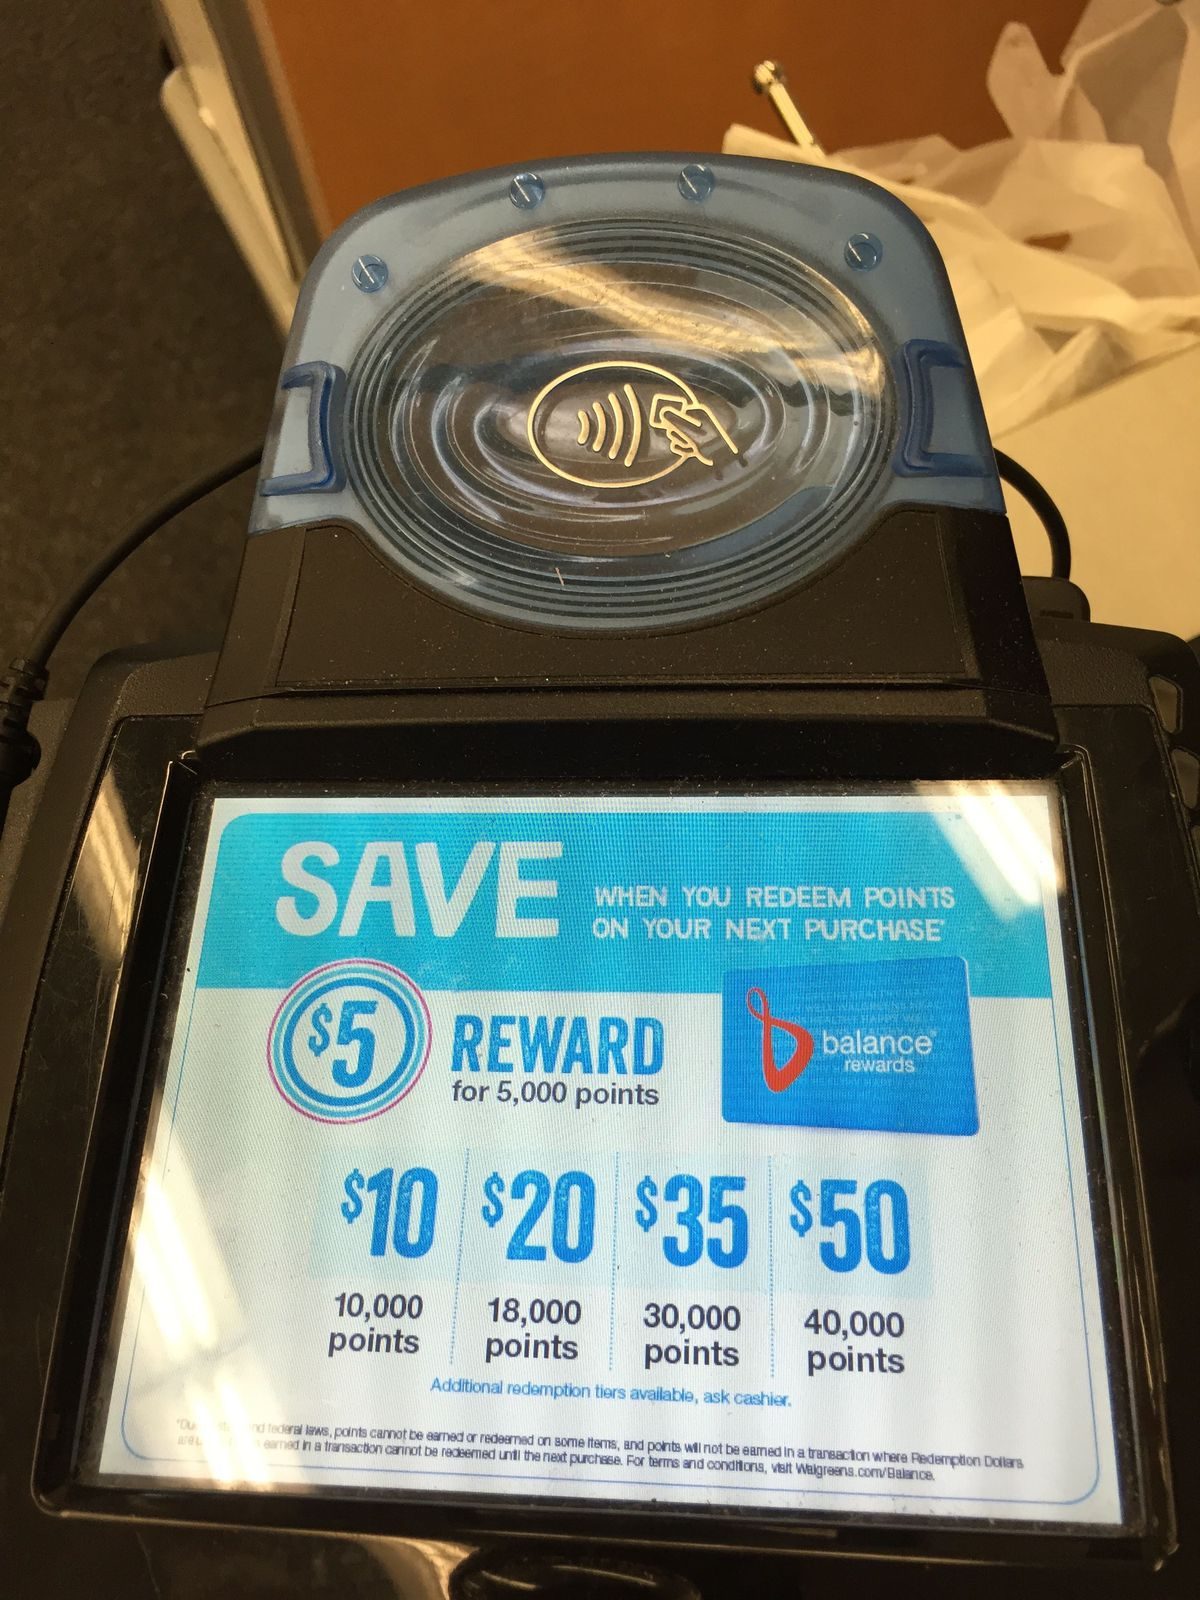 A wireless payment terminal at Walgreen's, compatible with Apple Pay